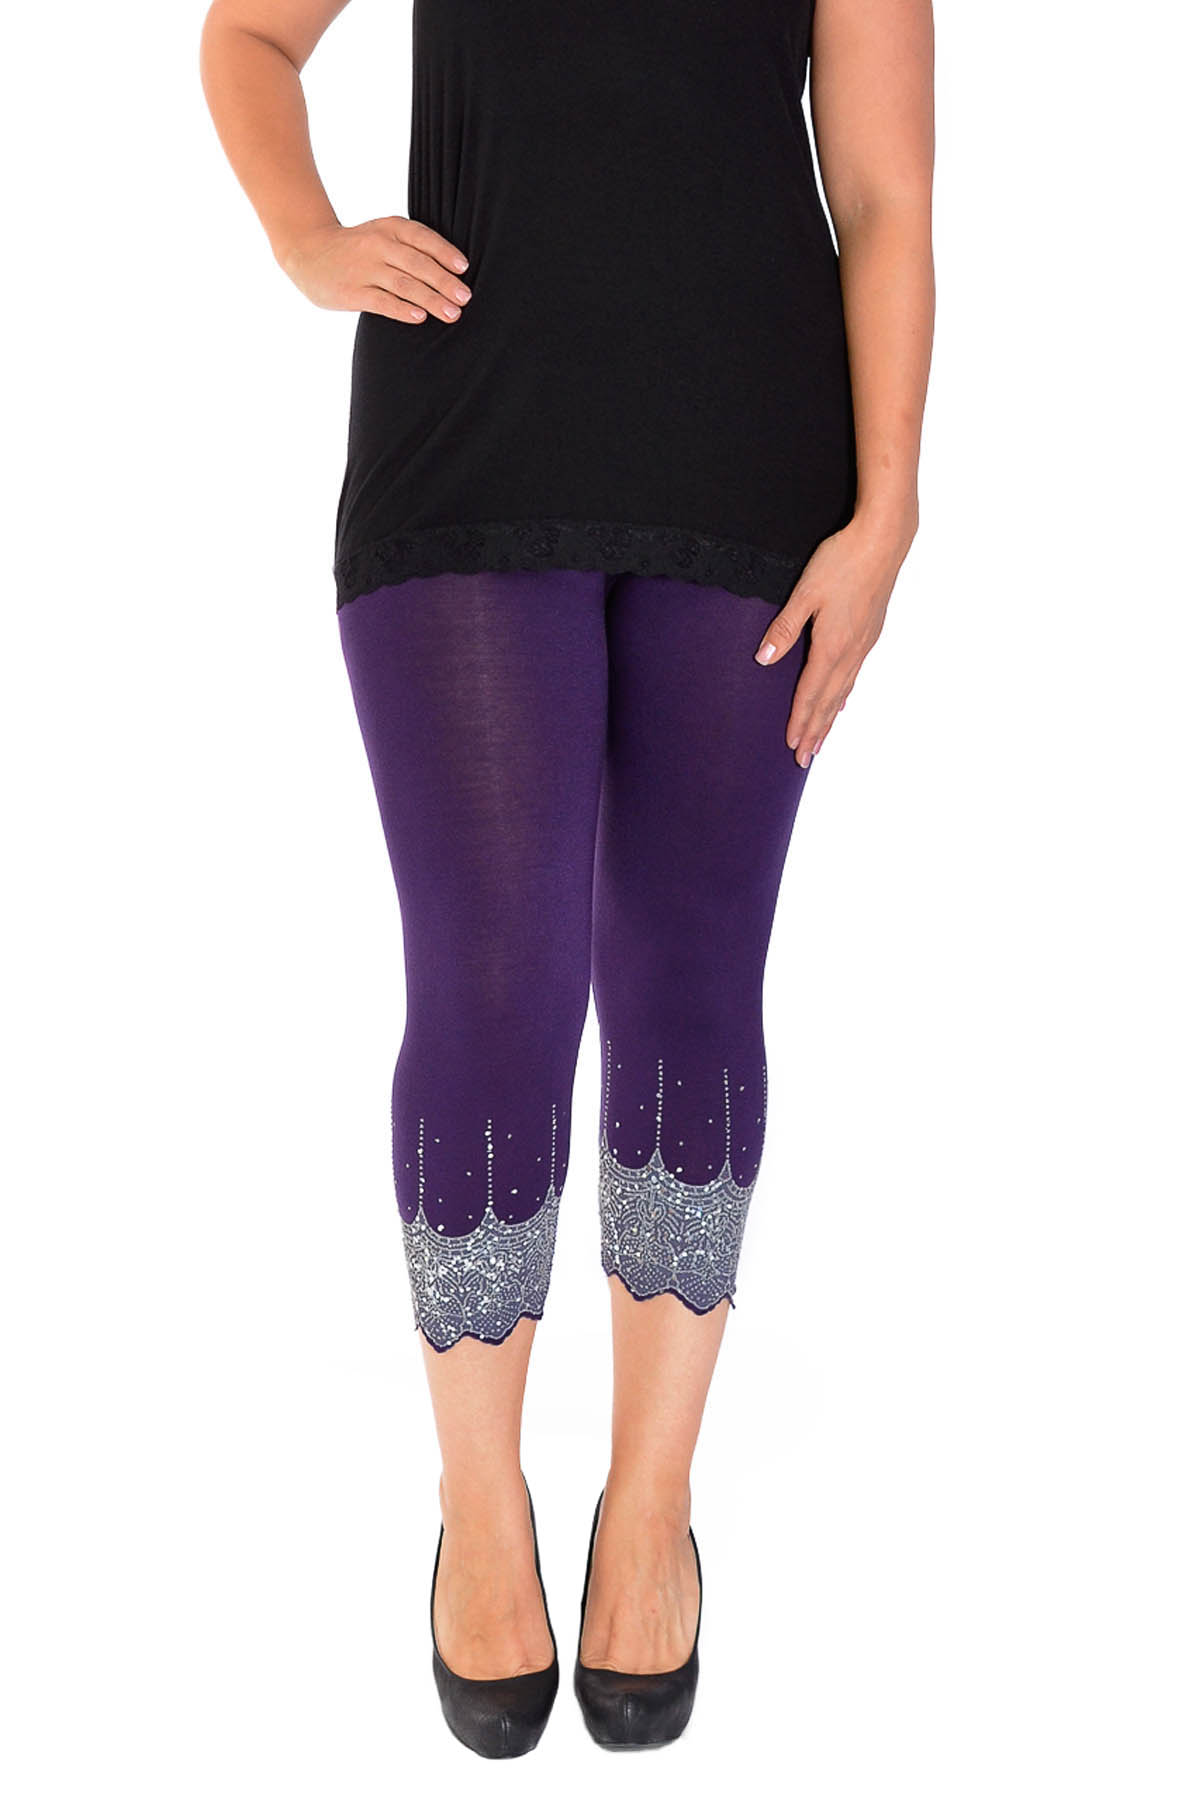 FREE SHIPPING - Browse our vast selection of women's capri leggings in colors and styles that you will love to wear and prices that paint a smile.